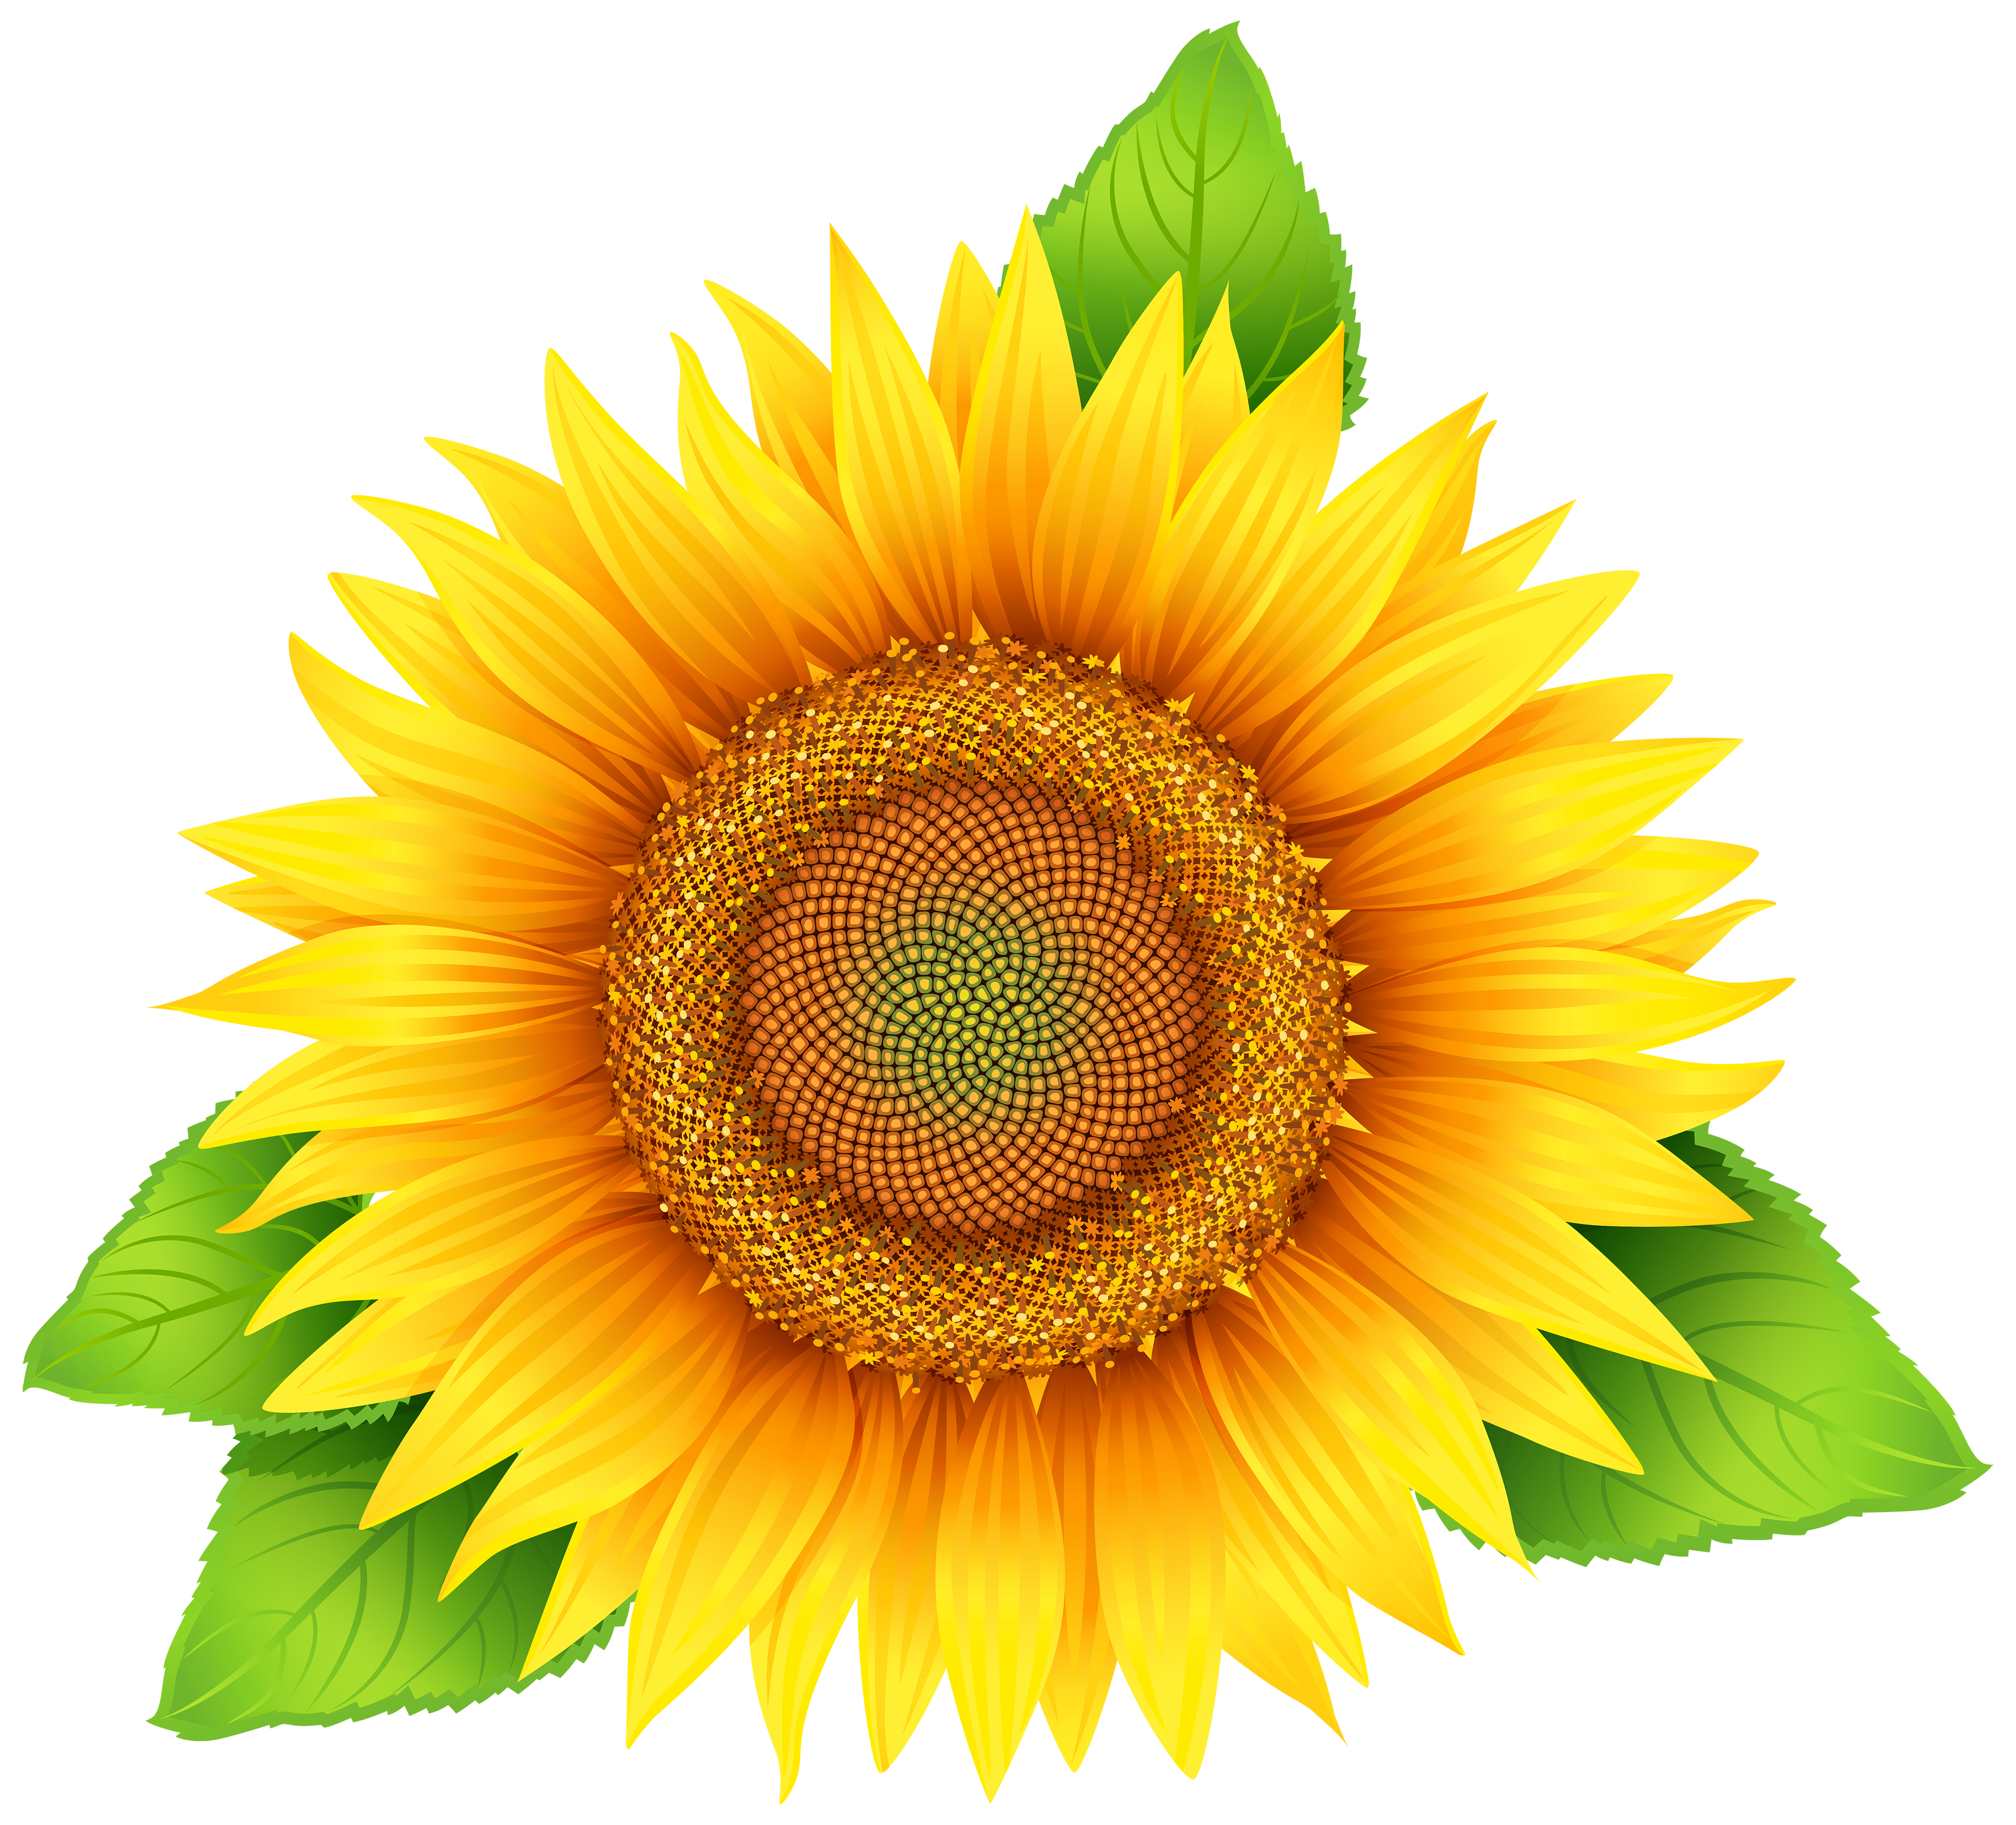 Sun flower clipart jpg download Sunflower PNG Clipart Image | Gallery Yopriceville - High-Quality ... jpg download